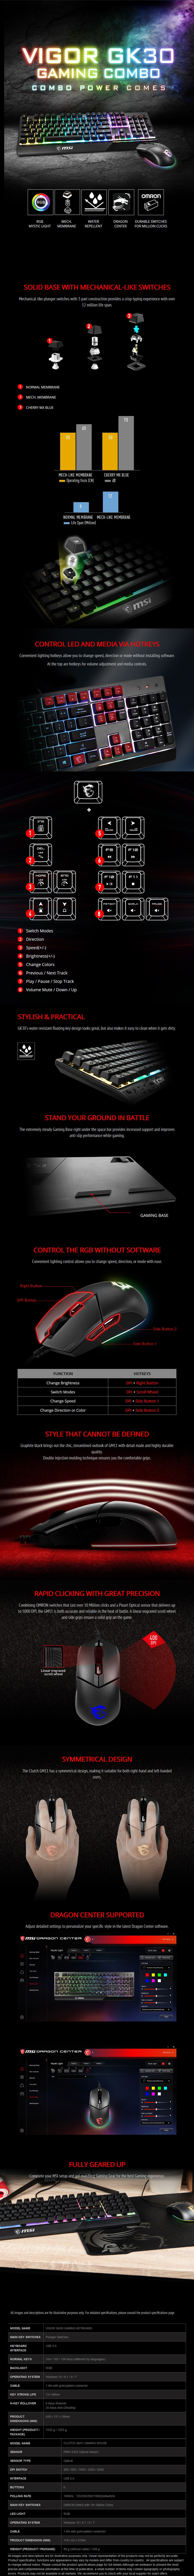 MSI Vigor GK30 Gaming Keyboard and Clutch GM11 Gaming Mouse Combo  -Desktop Overview 1